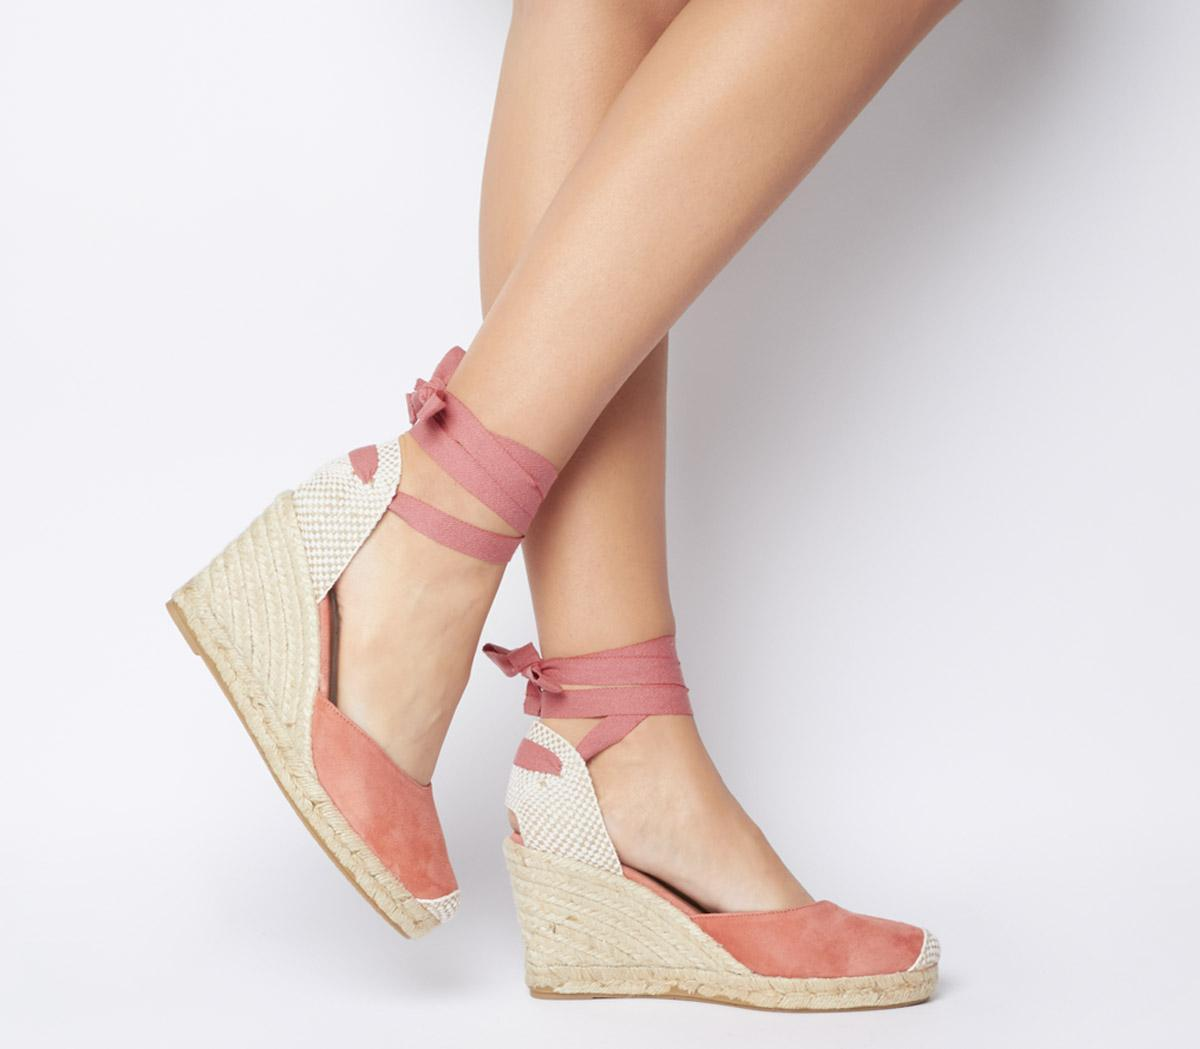 Marmalade Espadrille Wedges - Wide Fit